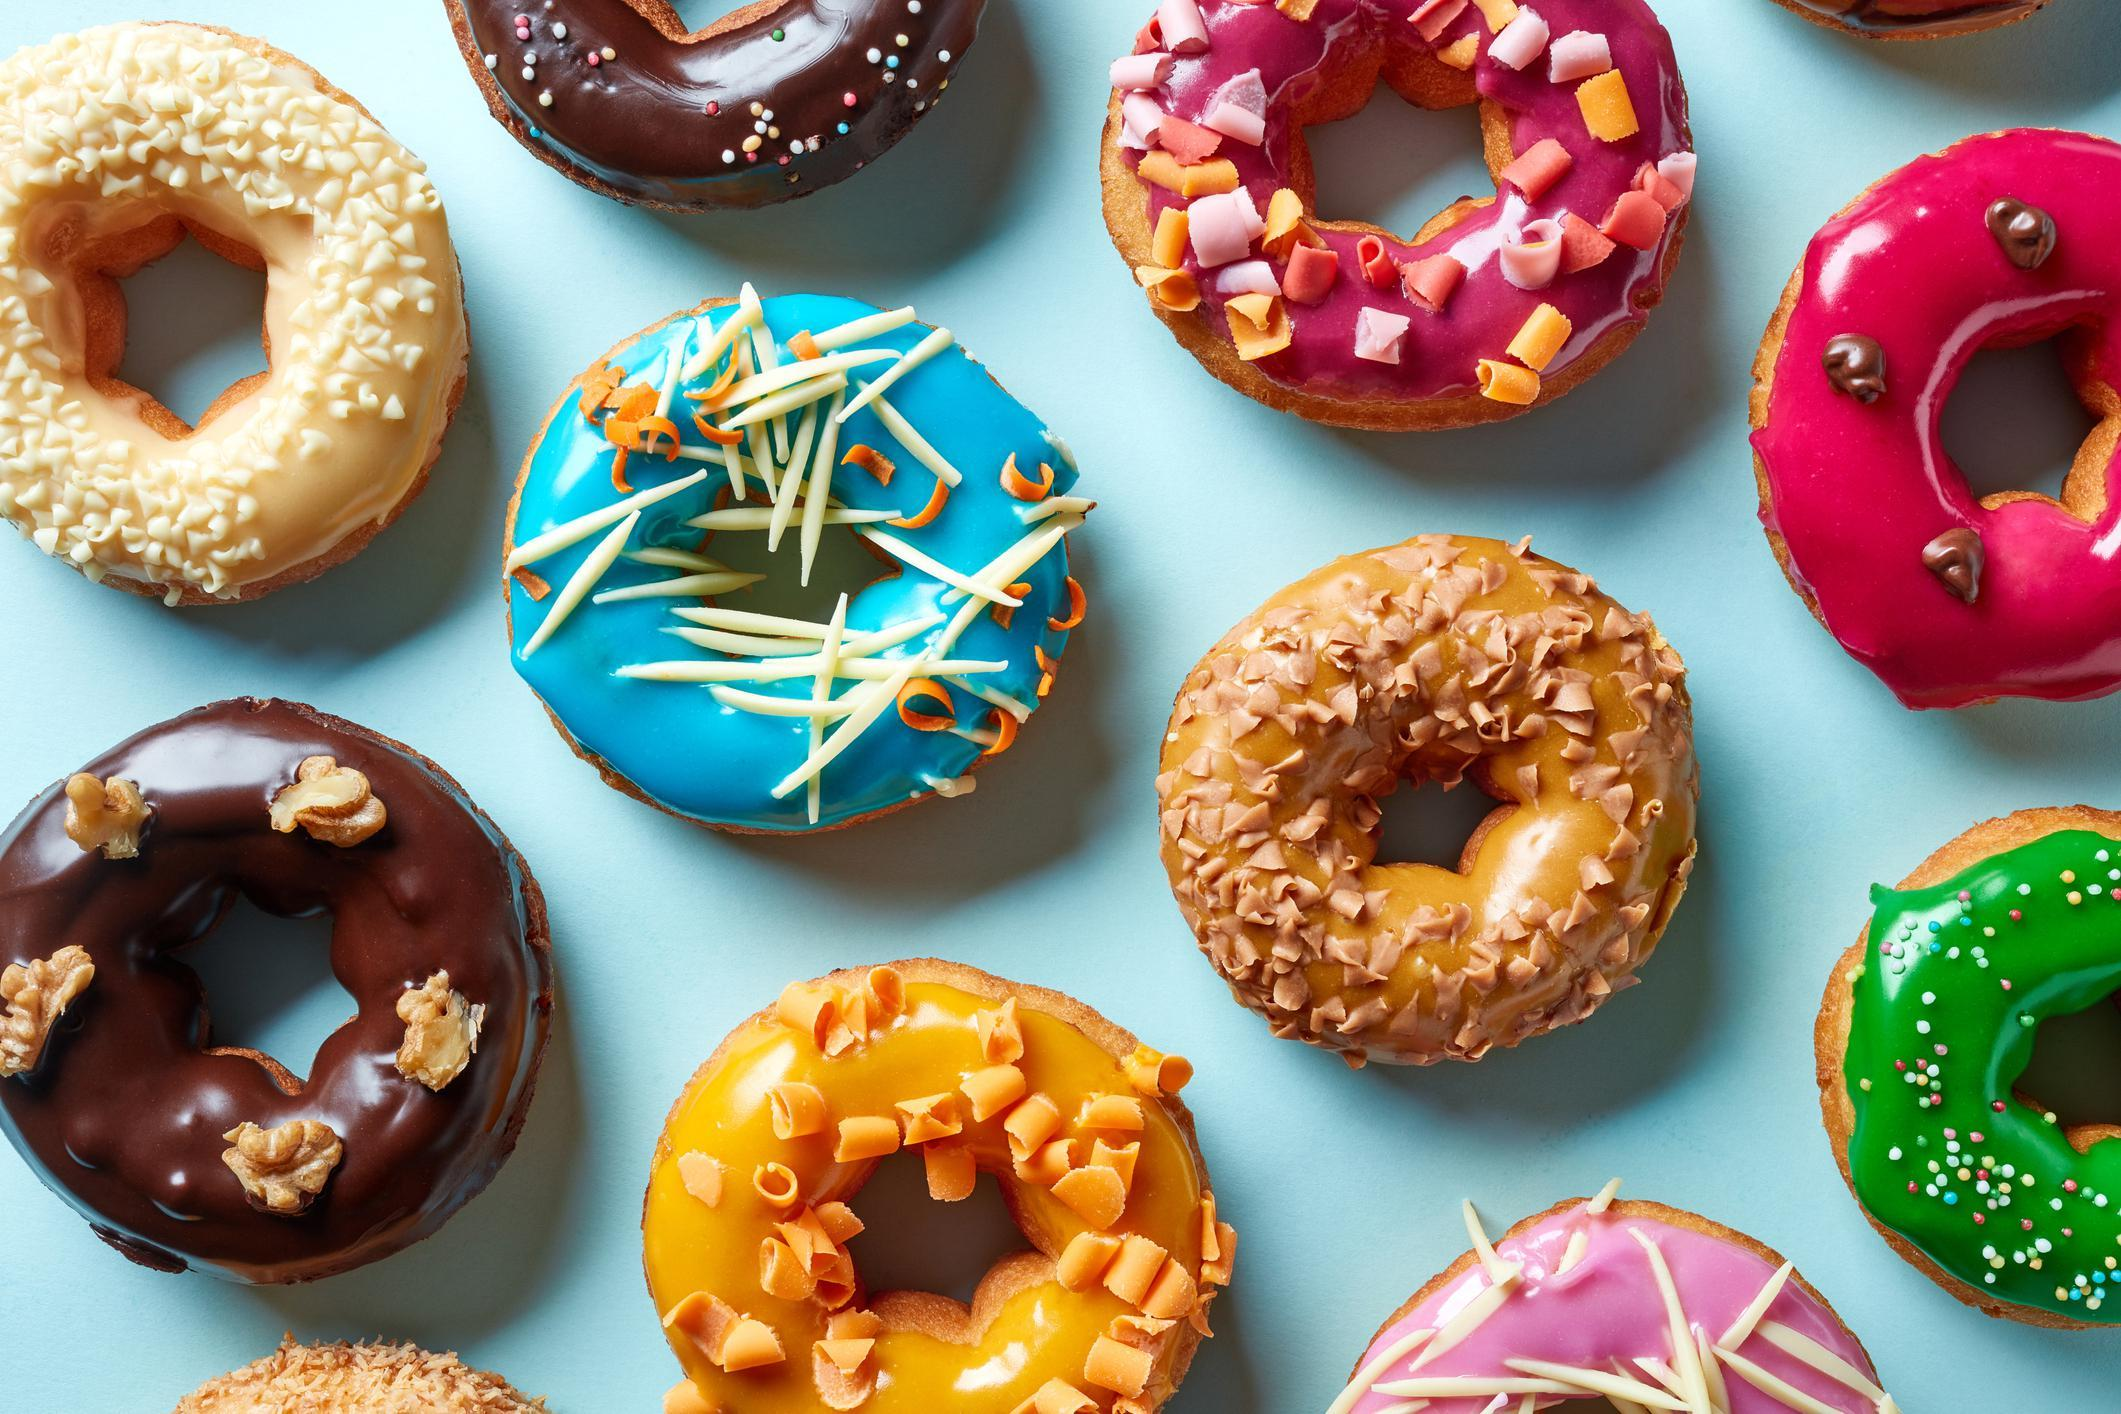 Why Does Everyone Spell 'Doughnut' Wrong?